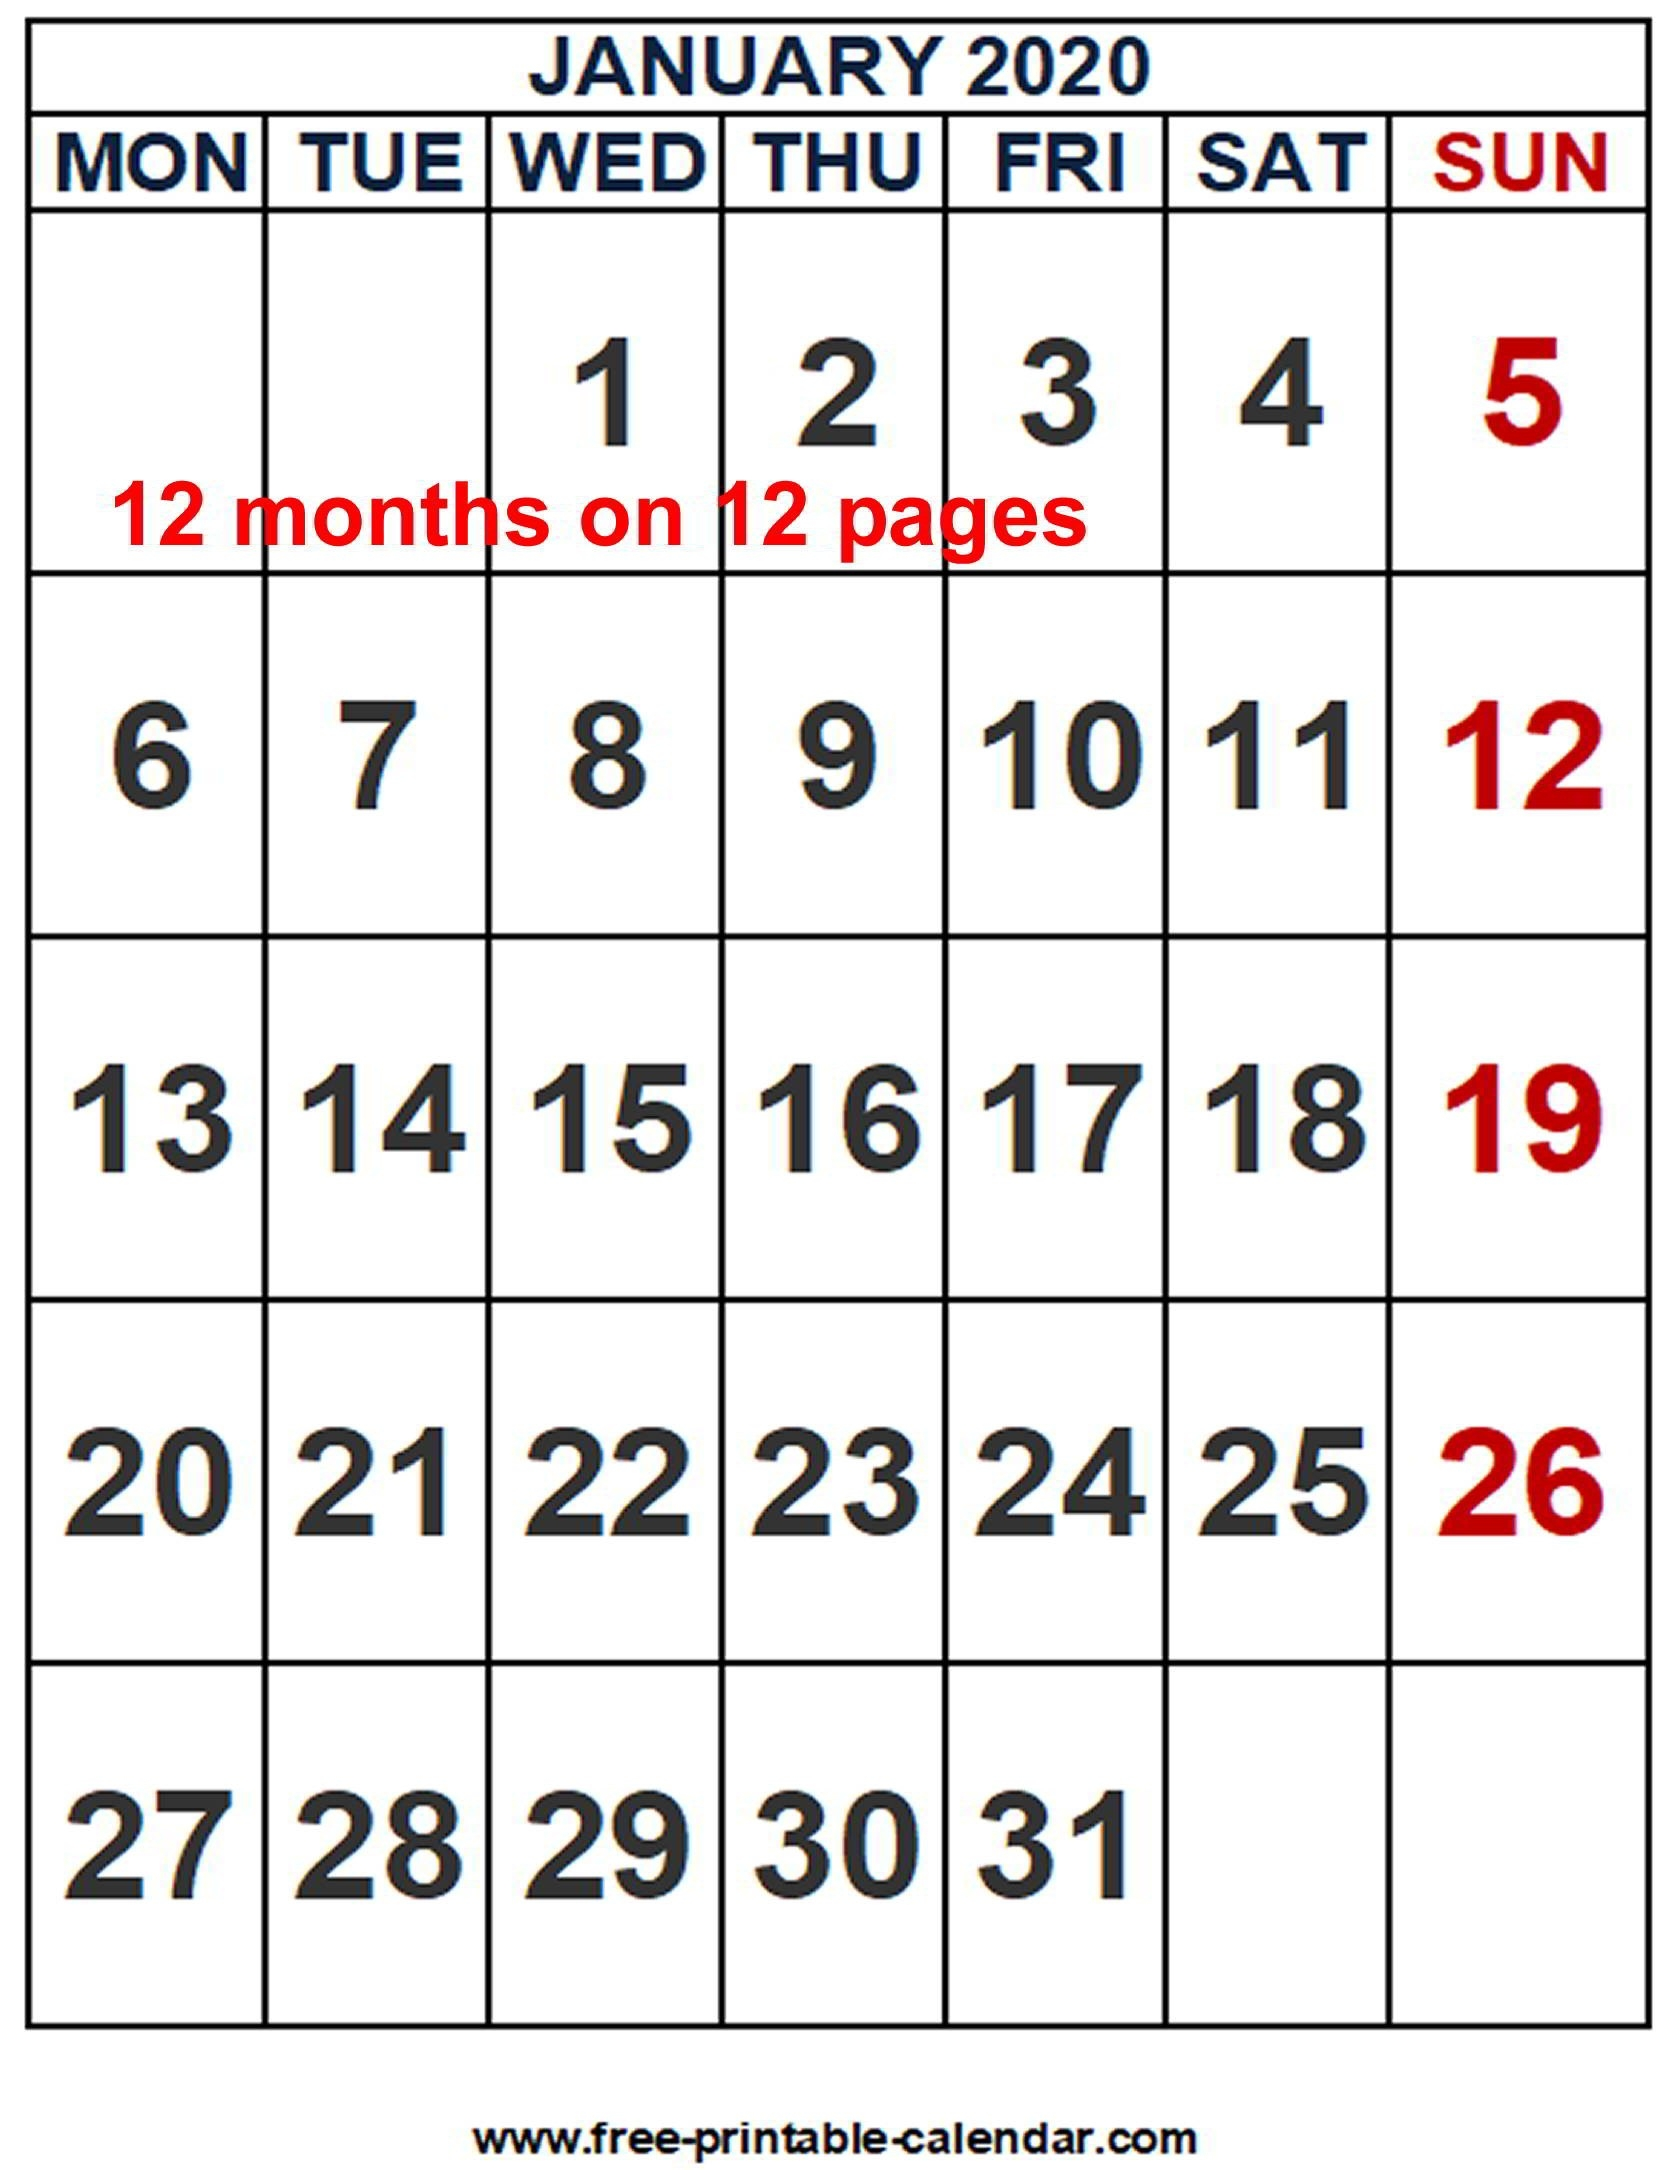 013 Calendar Word Template Free Staggering Ideas 2018 2019-Microsoft Word Template 2020 Calendar